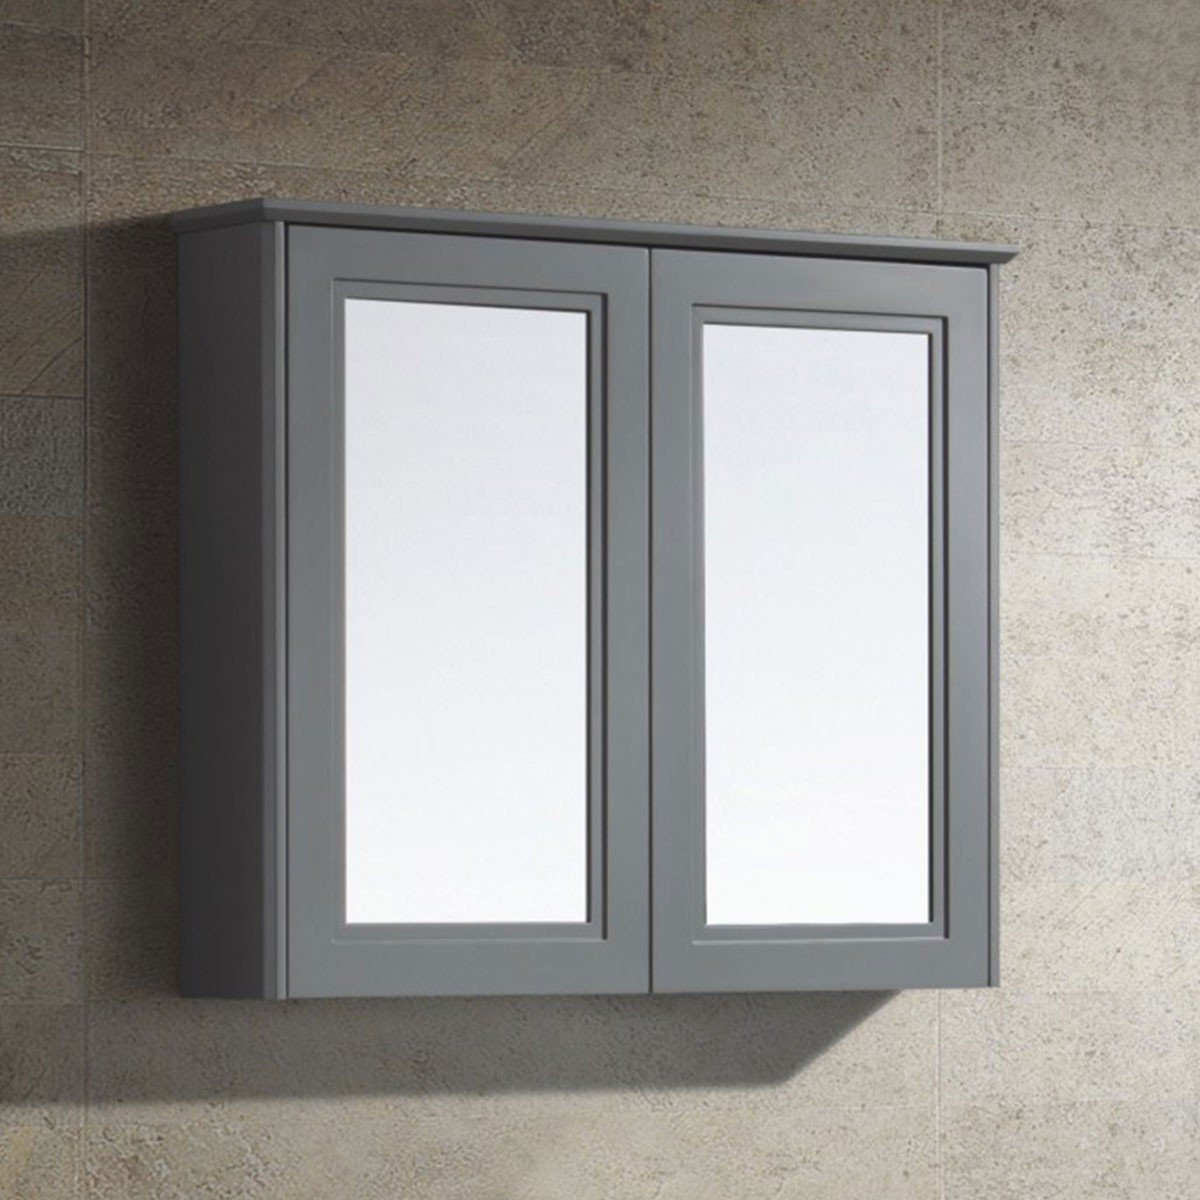 31 x 26 In Mirror Cabinet (BR8002-M)